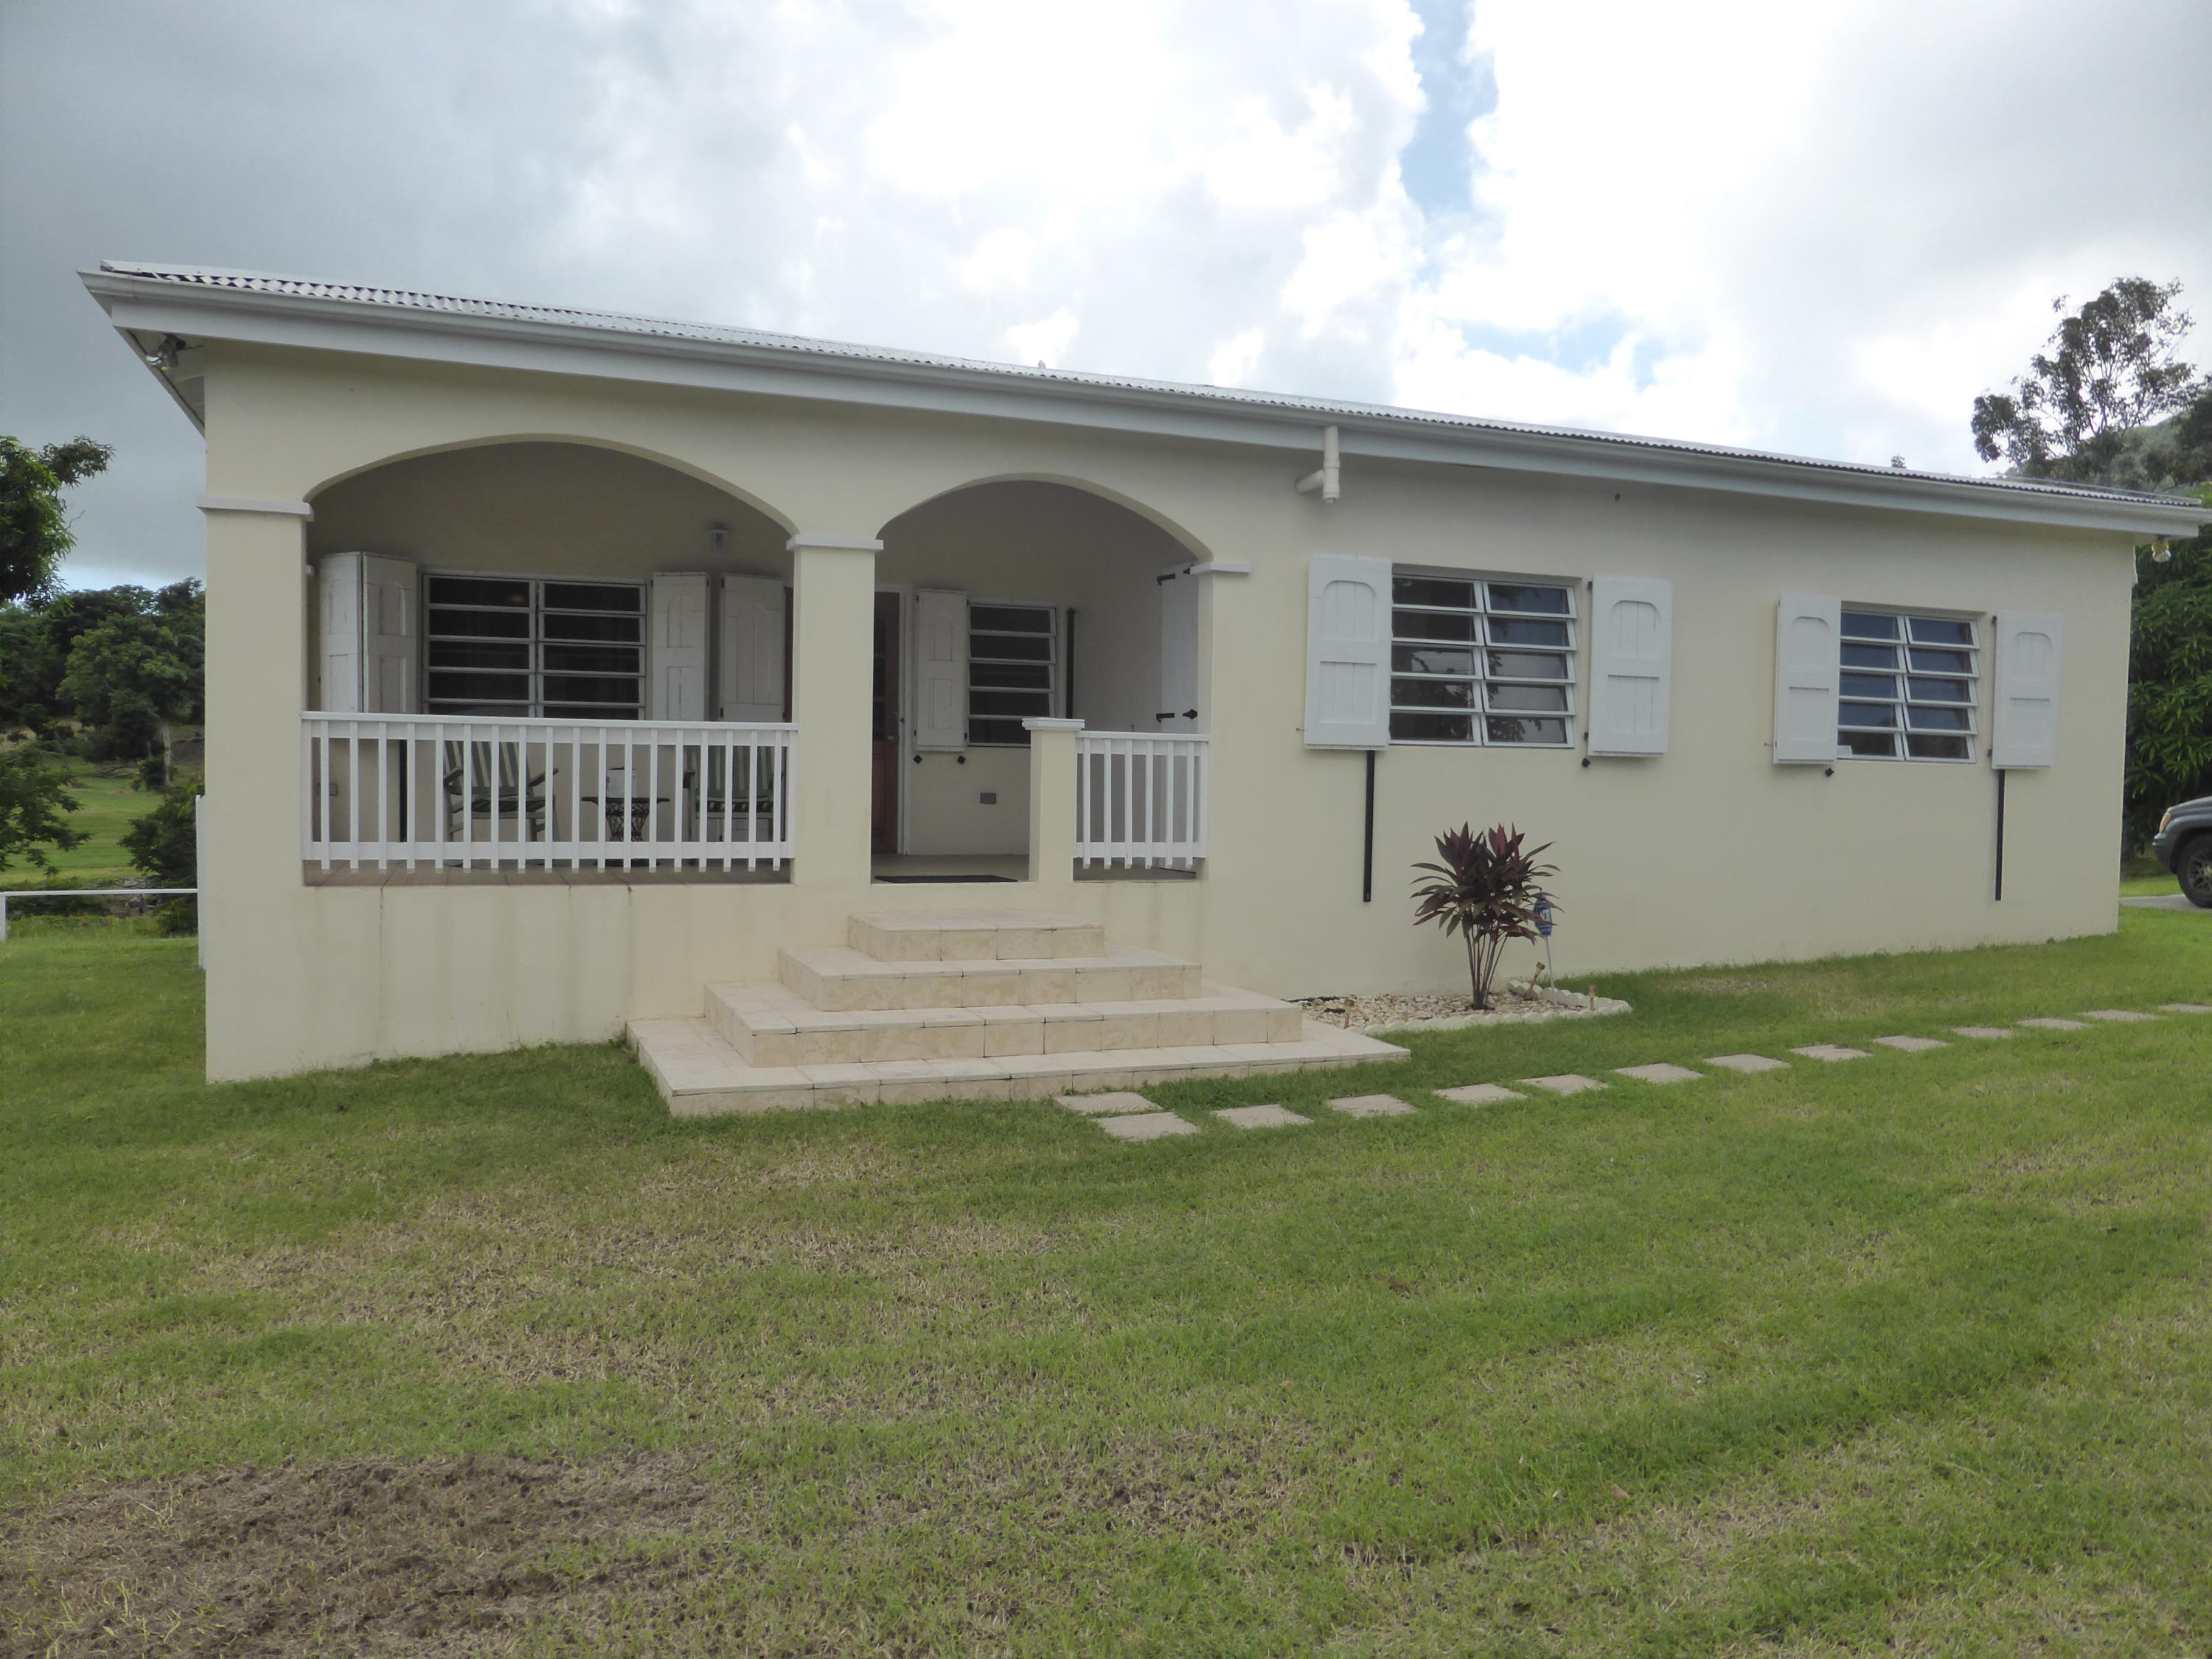 Single Family Home for Rent at 1E Little Fountain KI 1E Little Fountain KI St Croix, Virgin Islands 00850 United States Virgin Islands